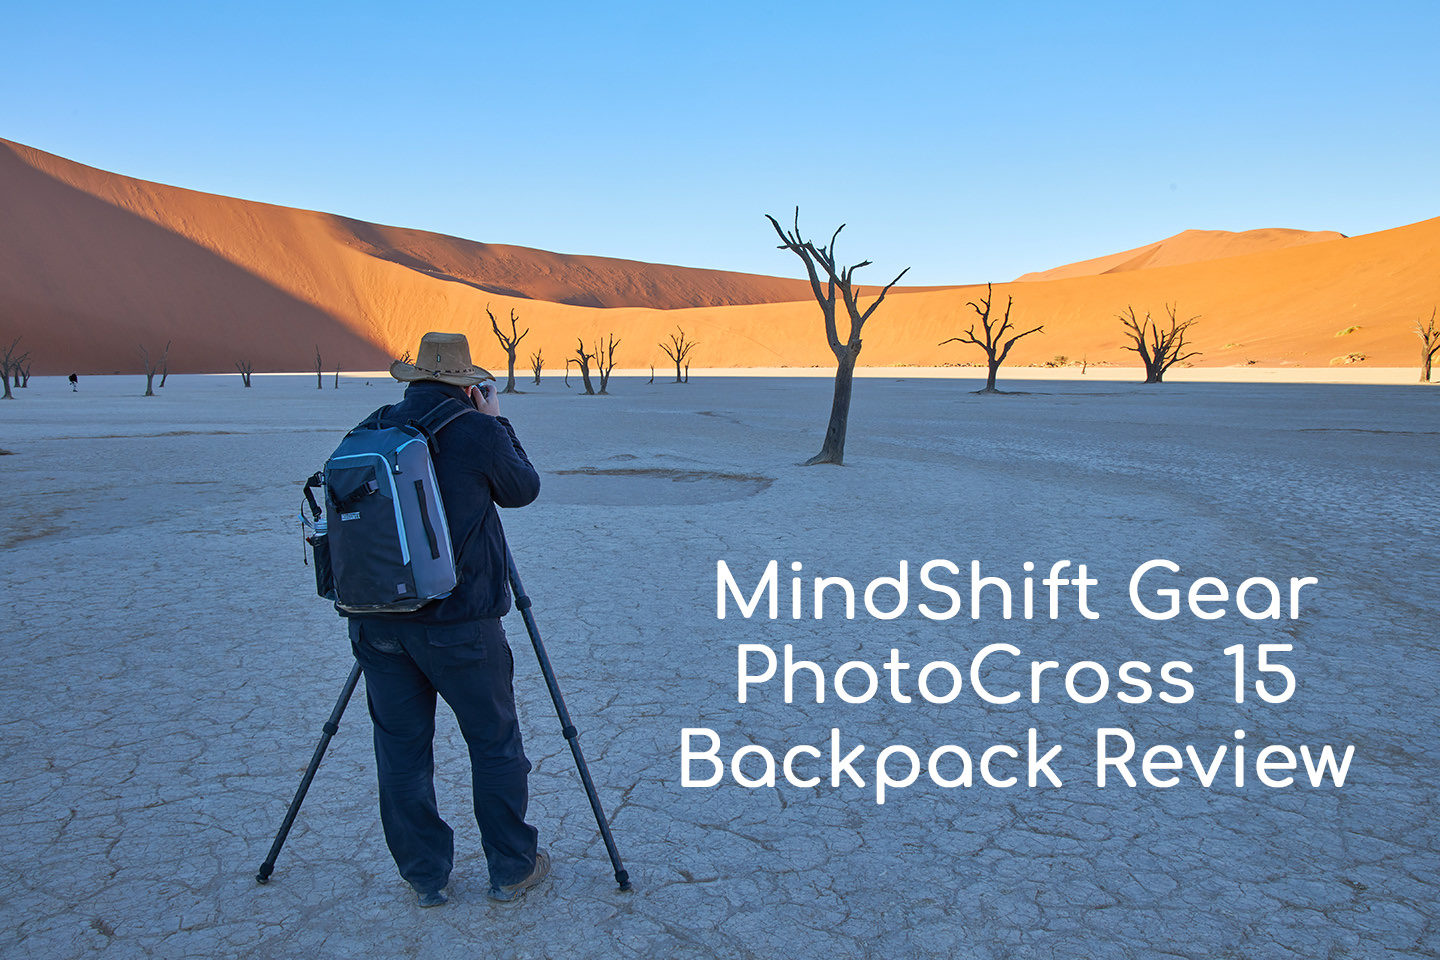 MindShift Gear PhotoCross 15 Backpack Review